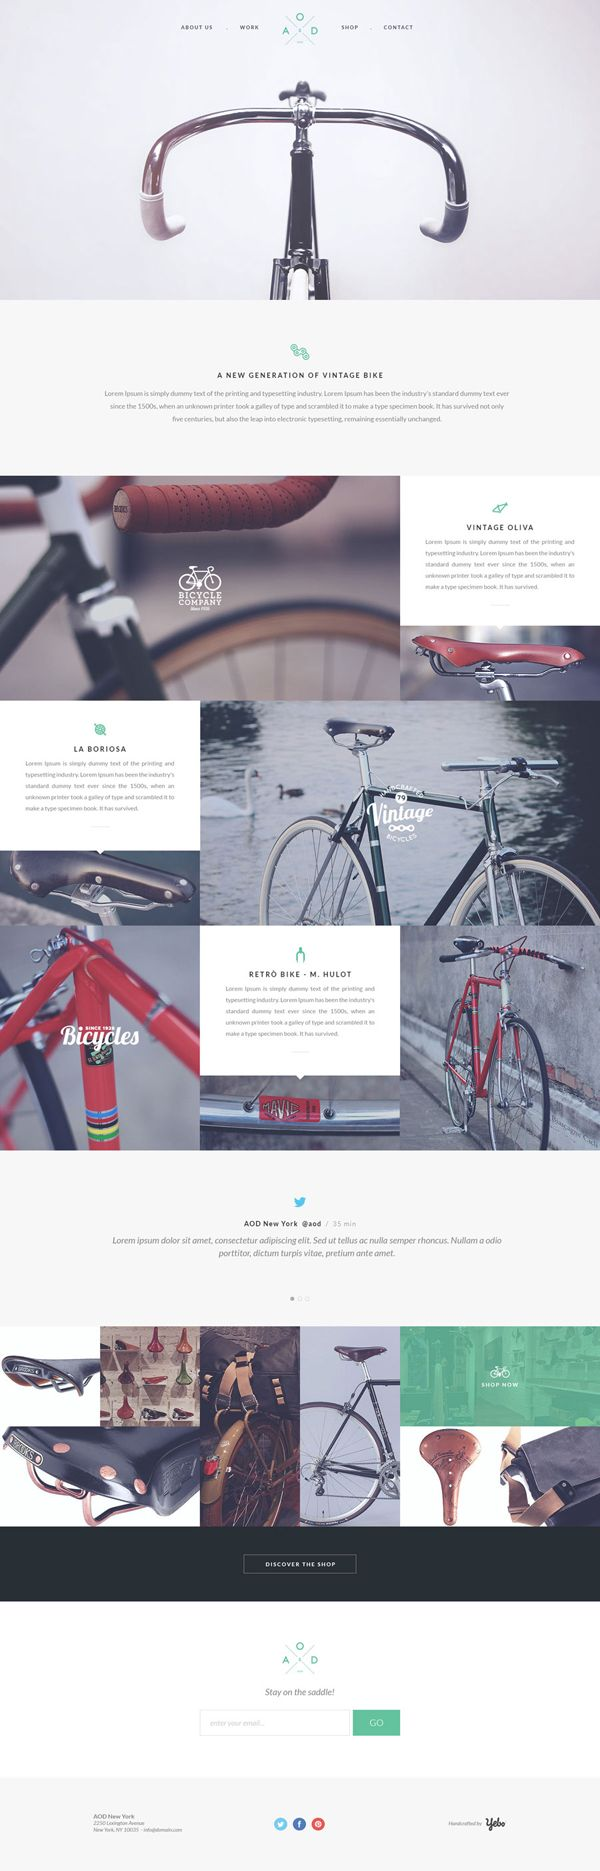 PSD Templates: 20 One Page Free Web Templates